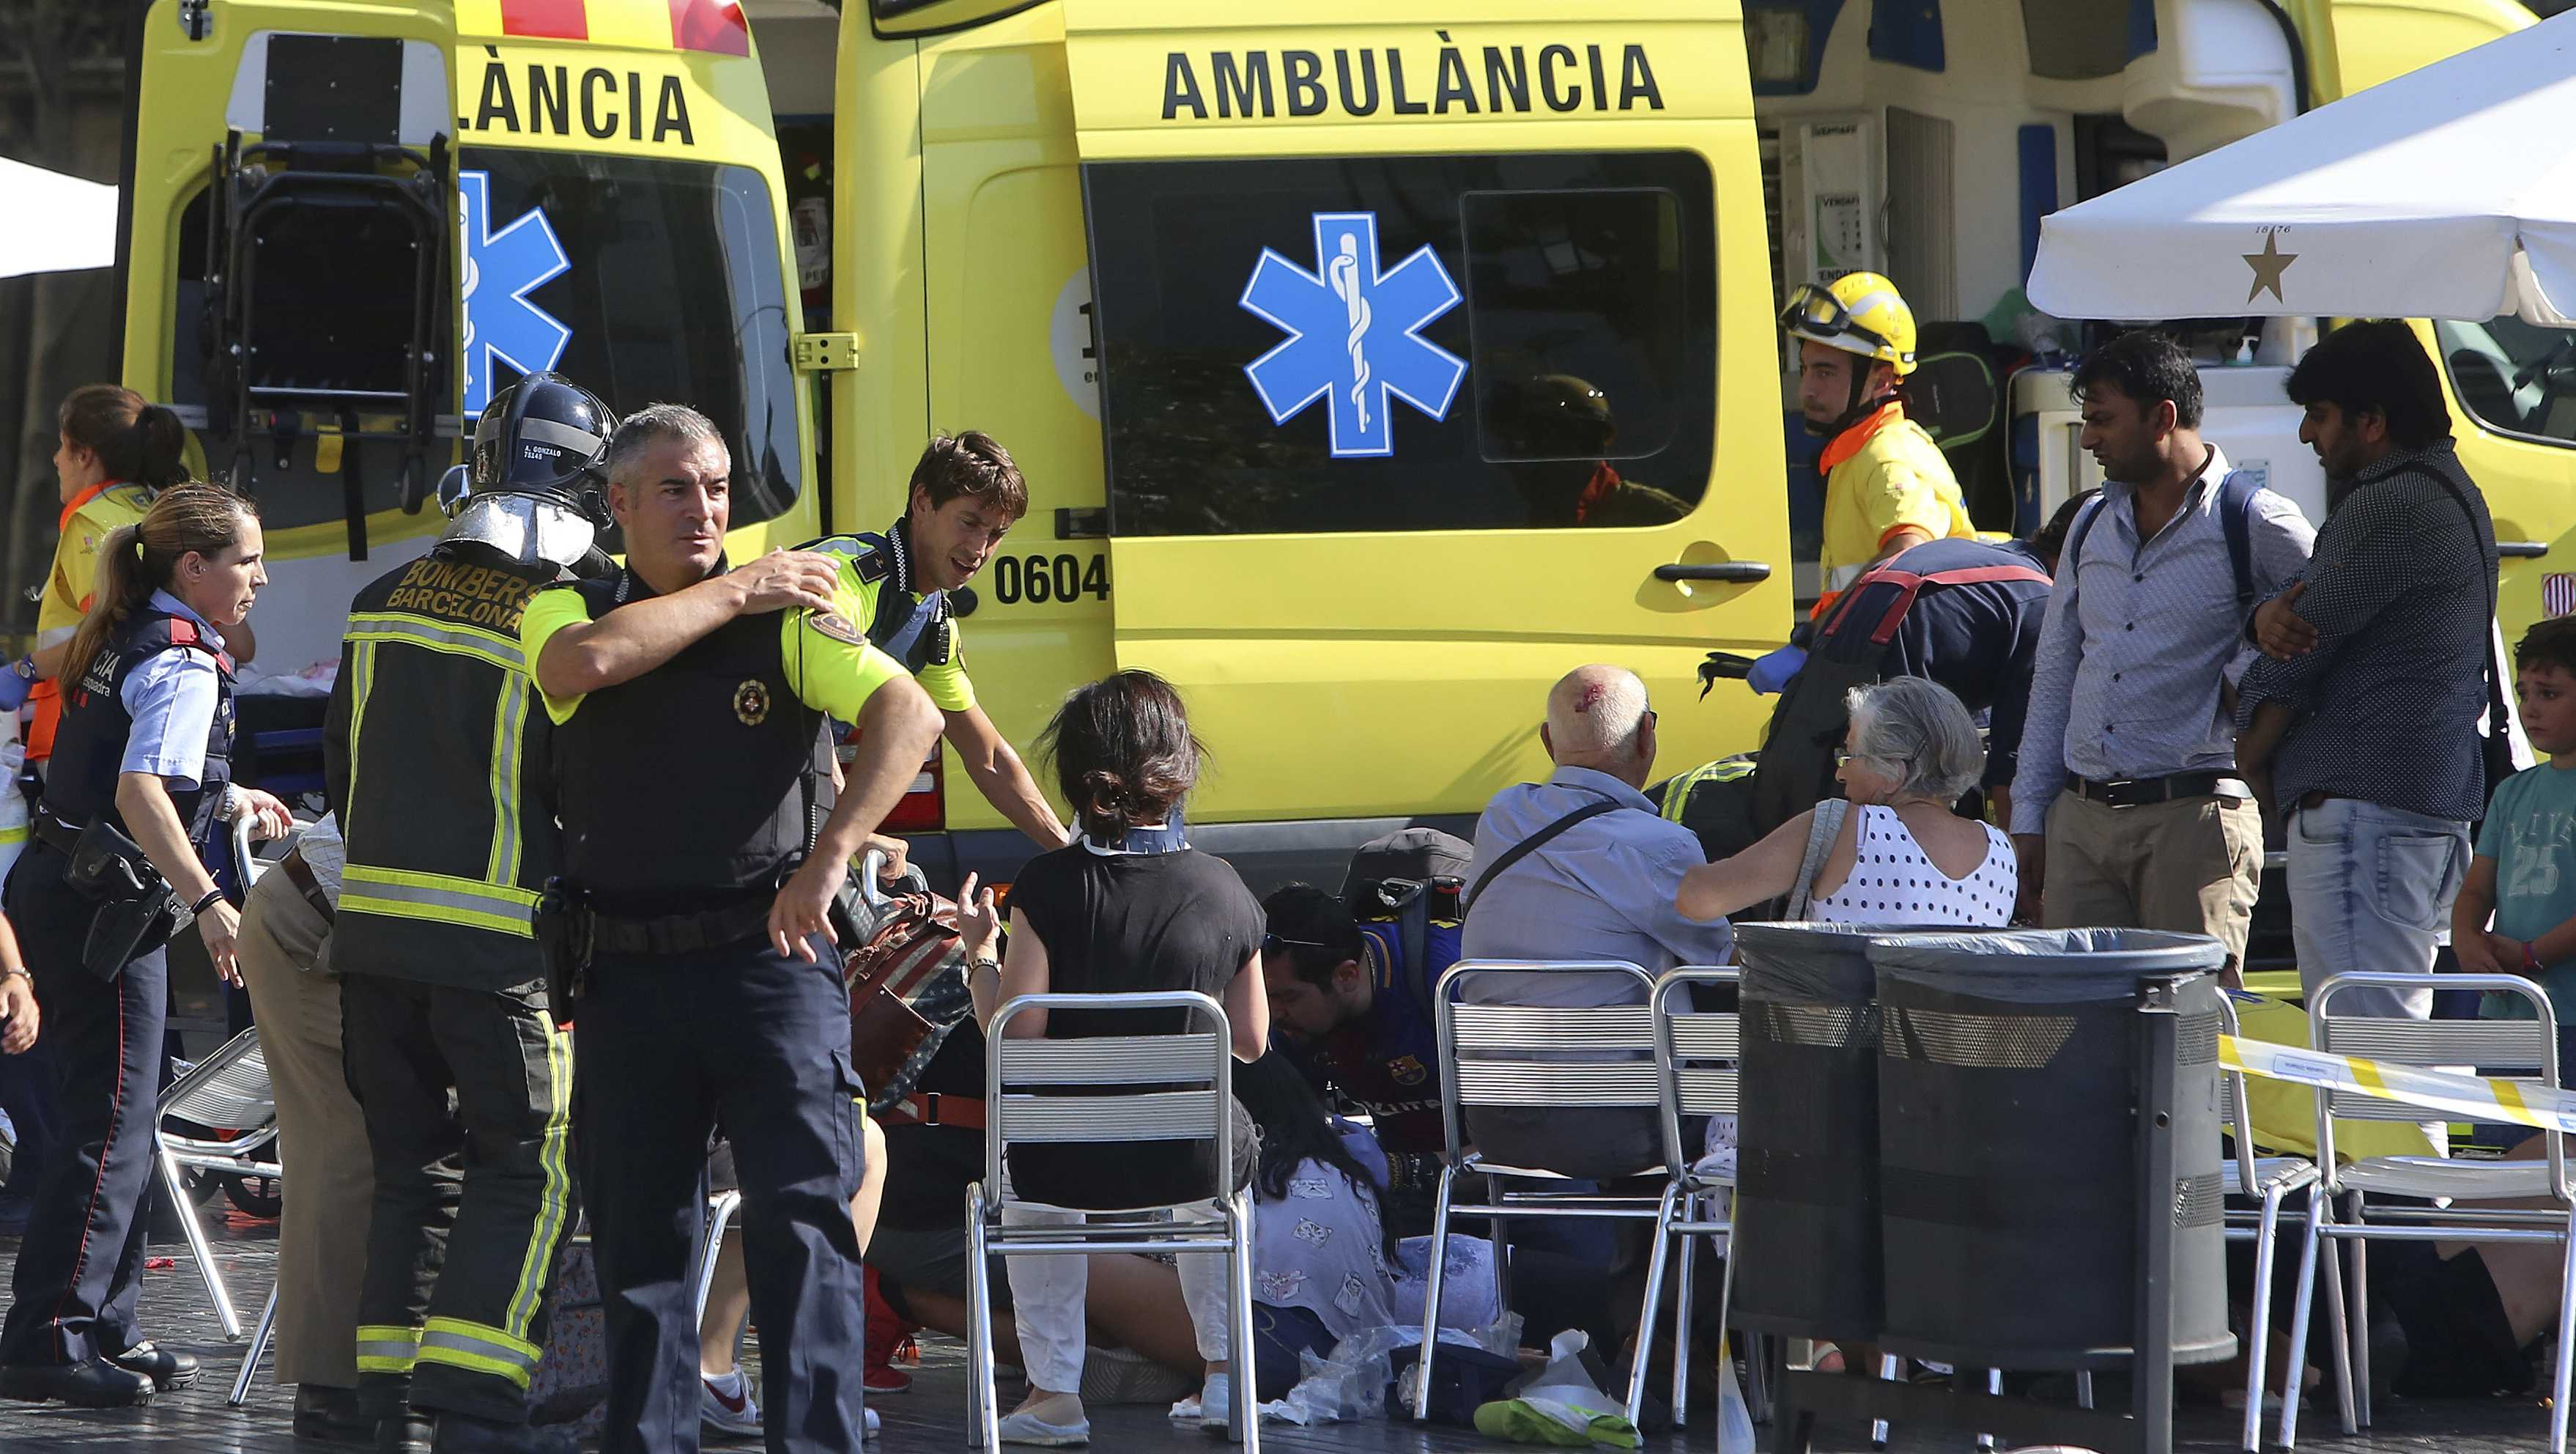 ISIS claims responsibility for Barcelona attack that killed 13, injured at least 100